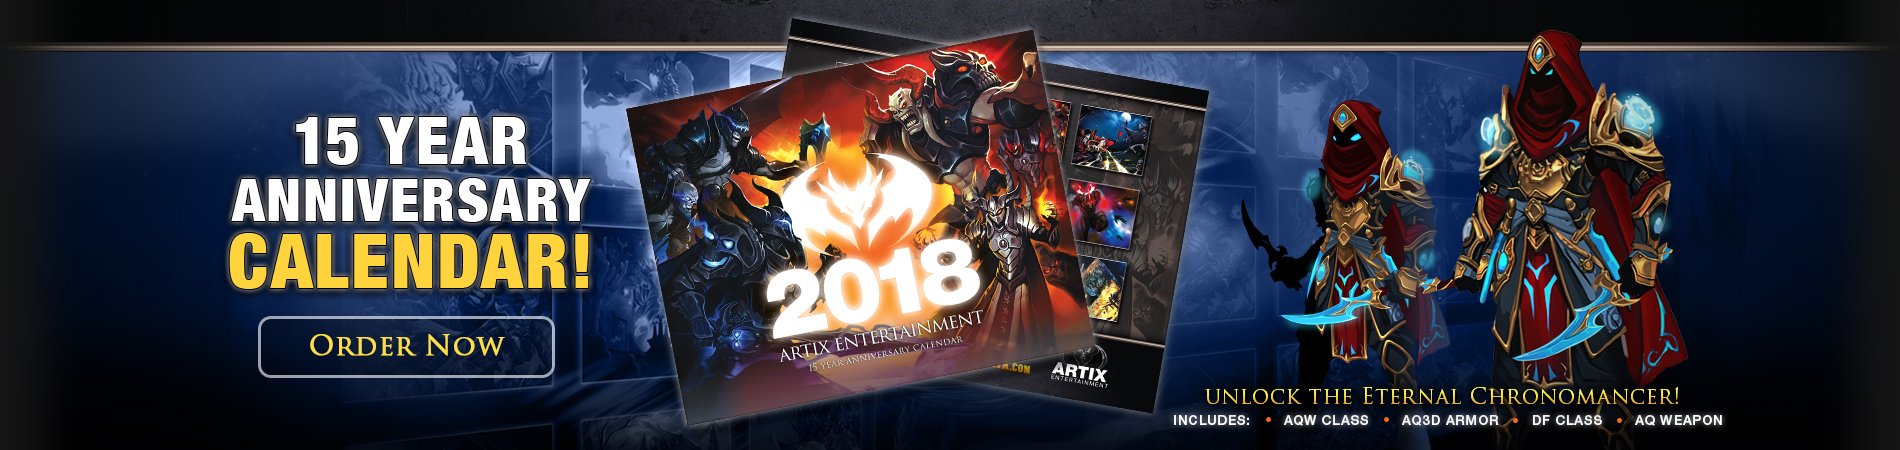 2018 Artix Entertainment Calendar